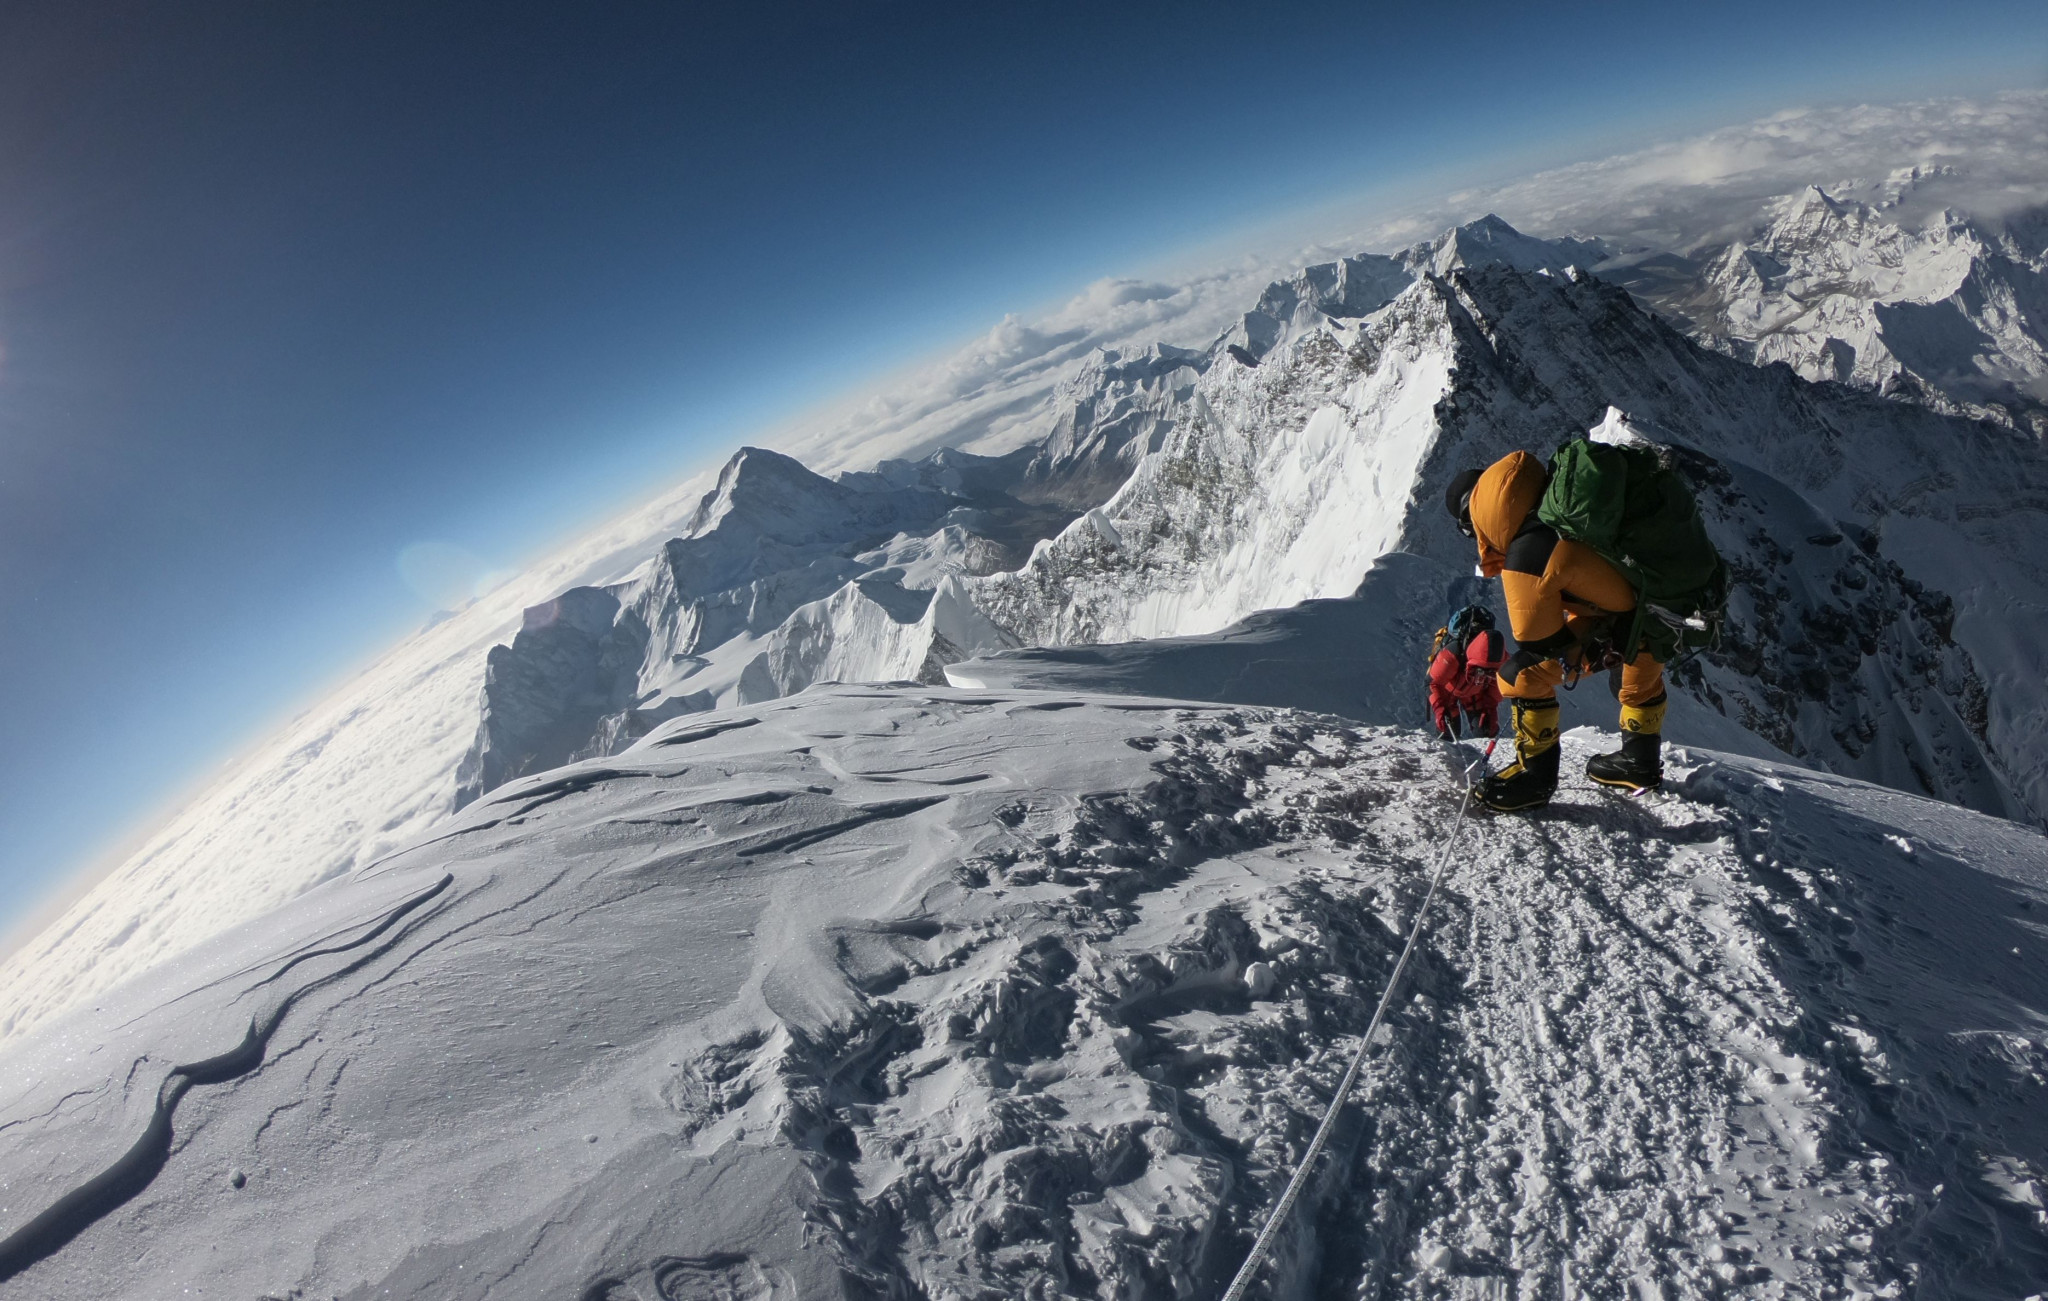 No foreign mountaineers are expected in the Himalayas this season ©Getty Images